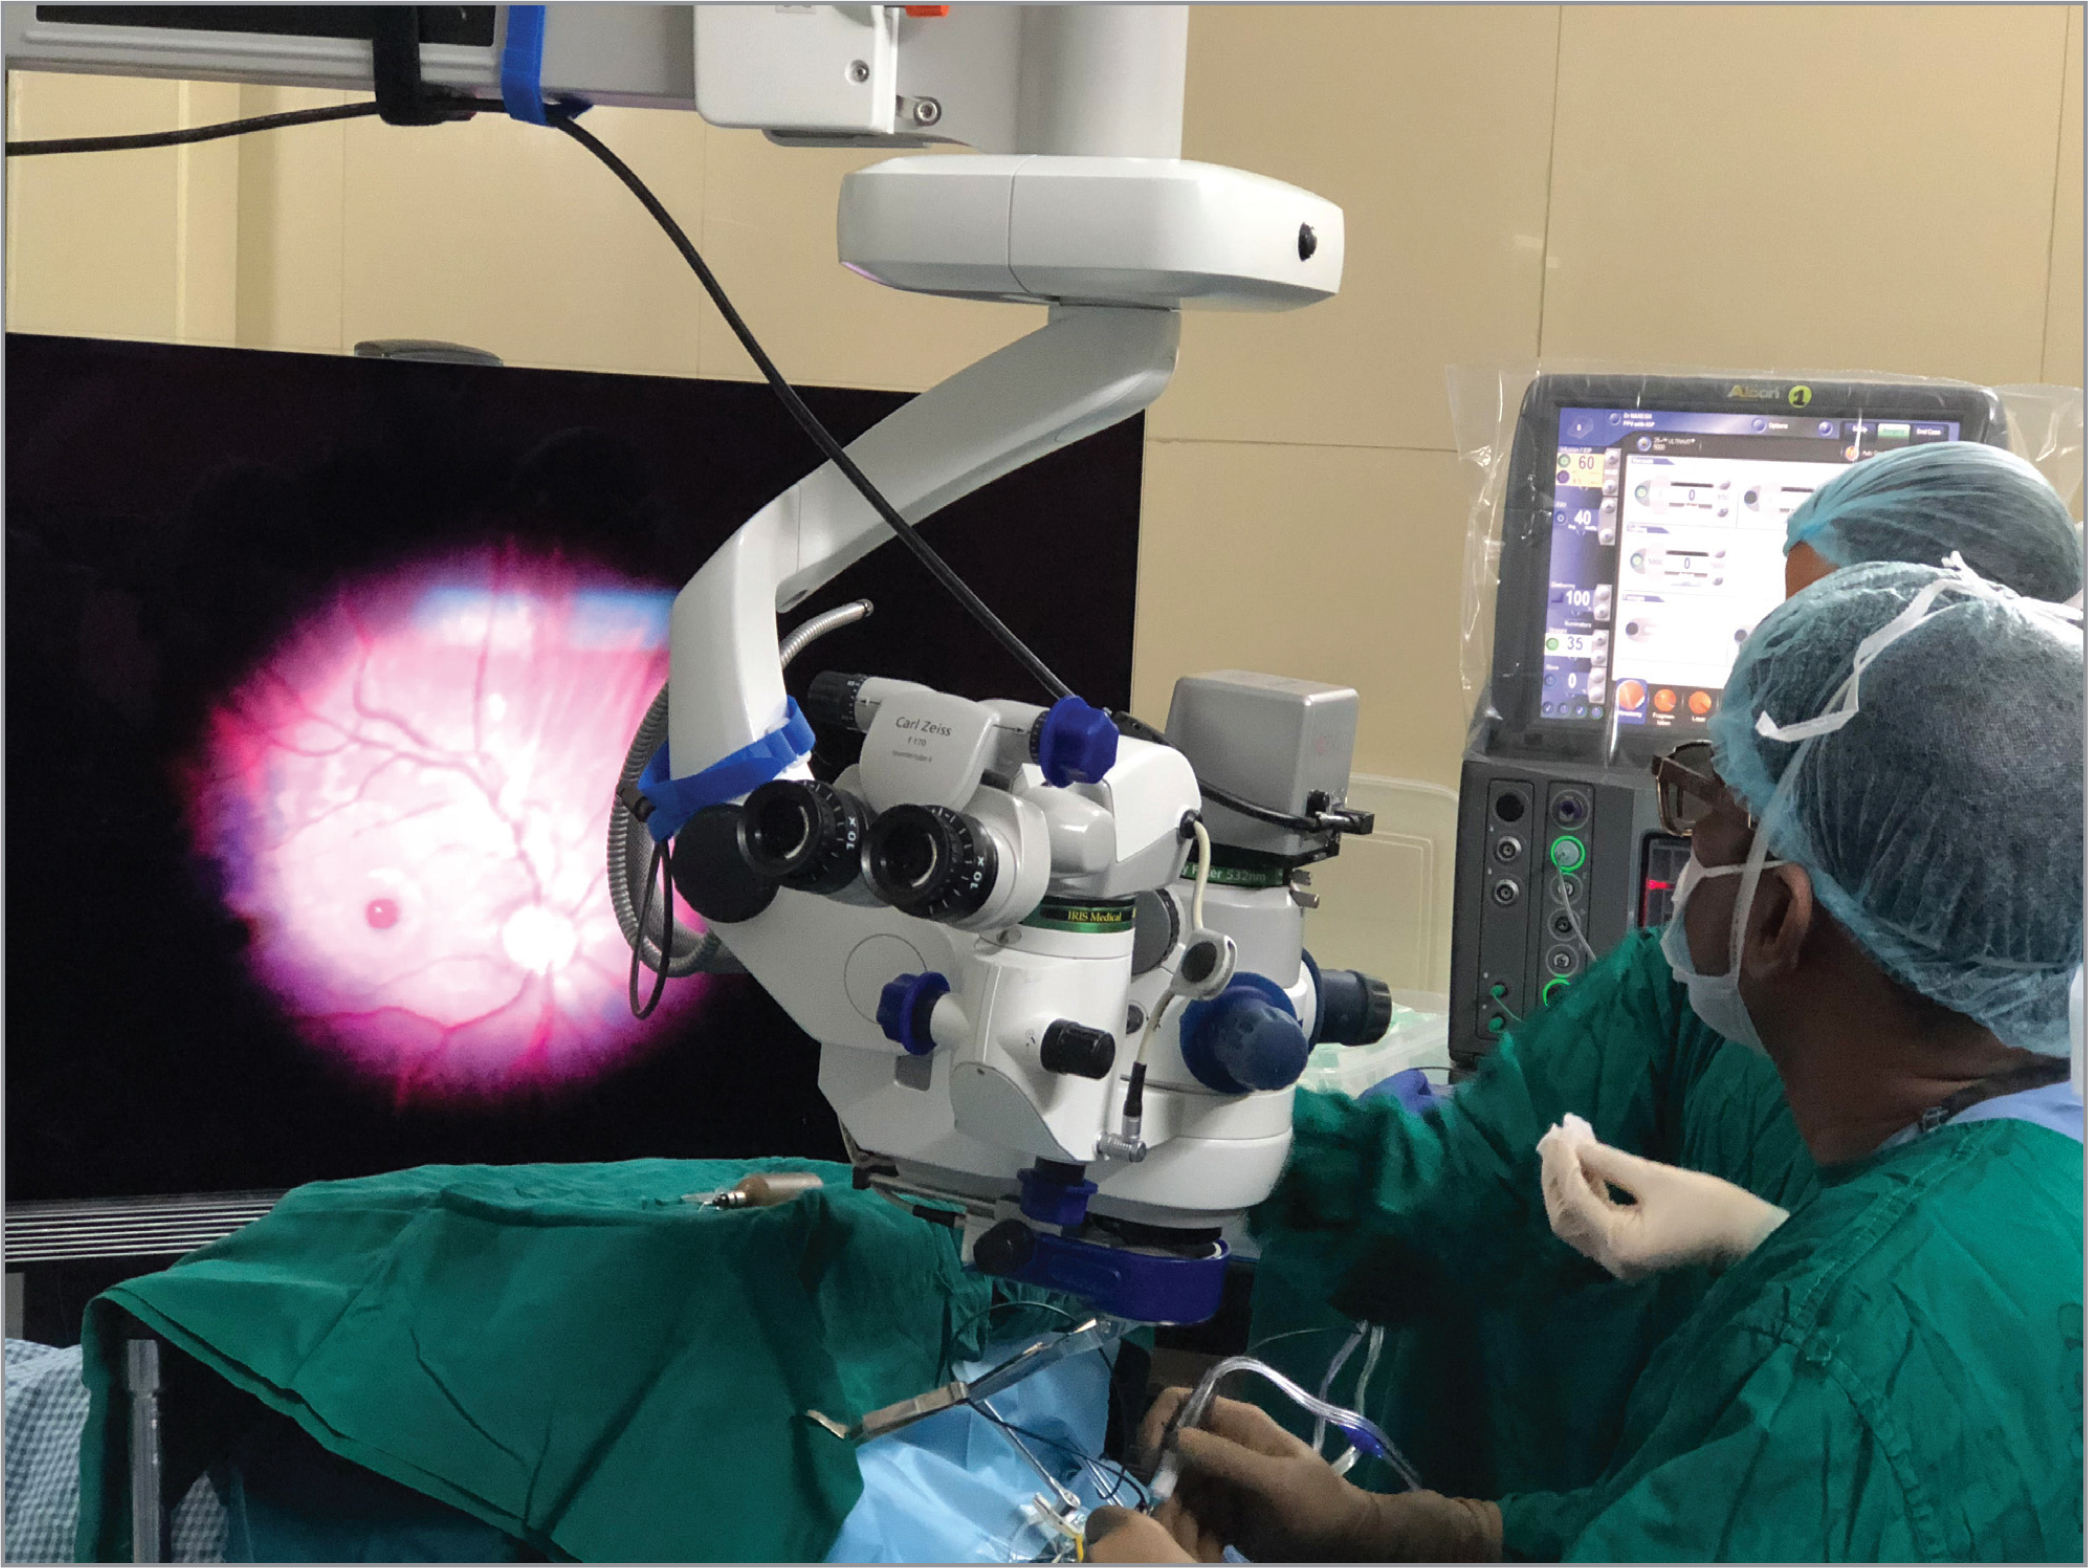 The surgeon (NB) wearing polarized three-dimensional glasses to operate on a patient with idiopathic full-thickness macular hole using the NGENUITY 3D Visualization System.